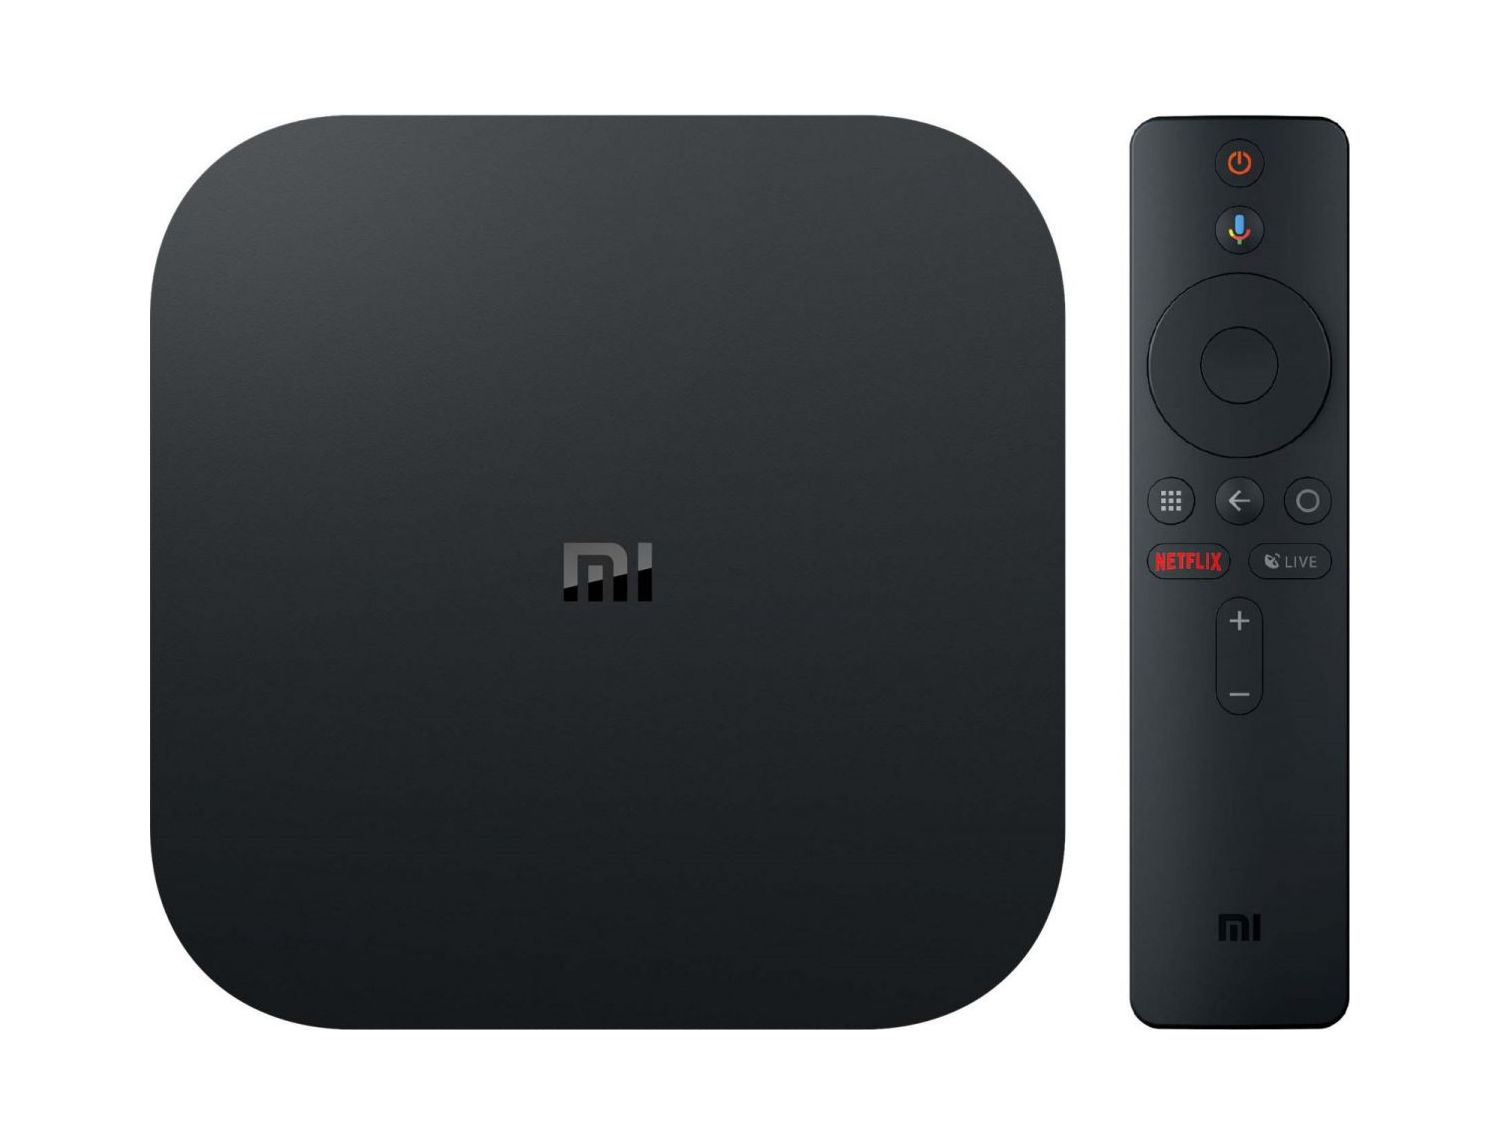 Фото - Медиаплеер Xiaomi Mi Box S (International Version) медиаплеер mirascreen g2 wifi